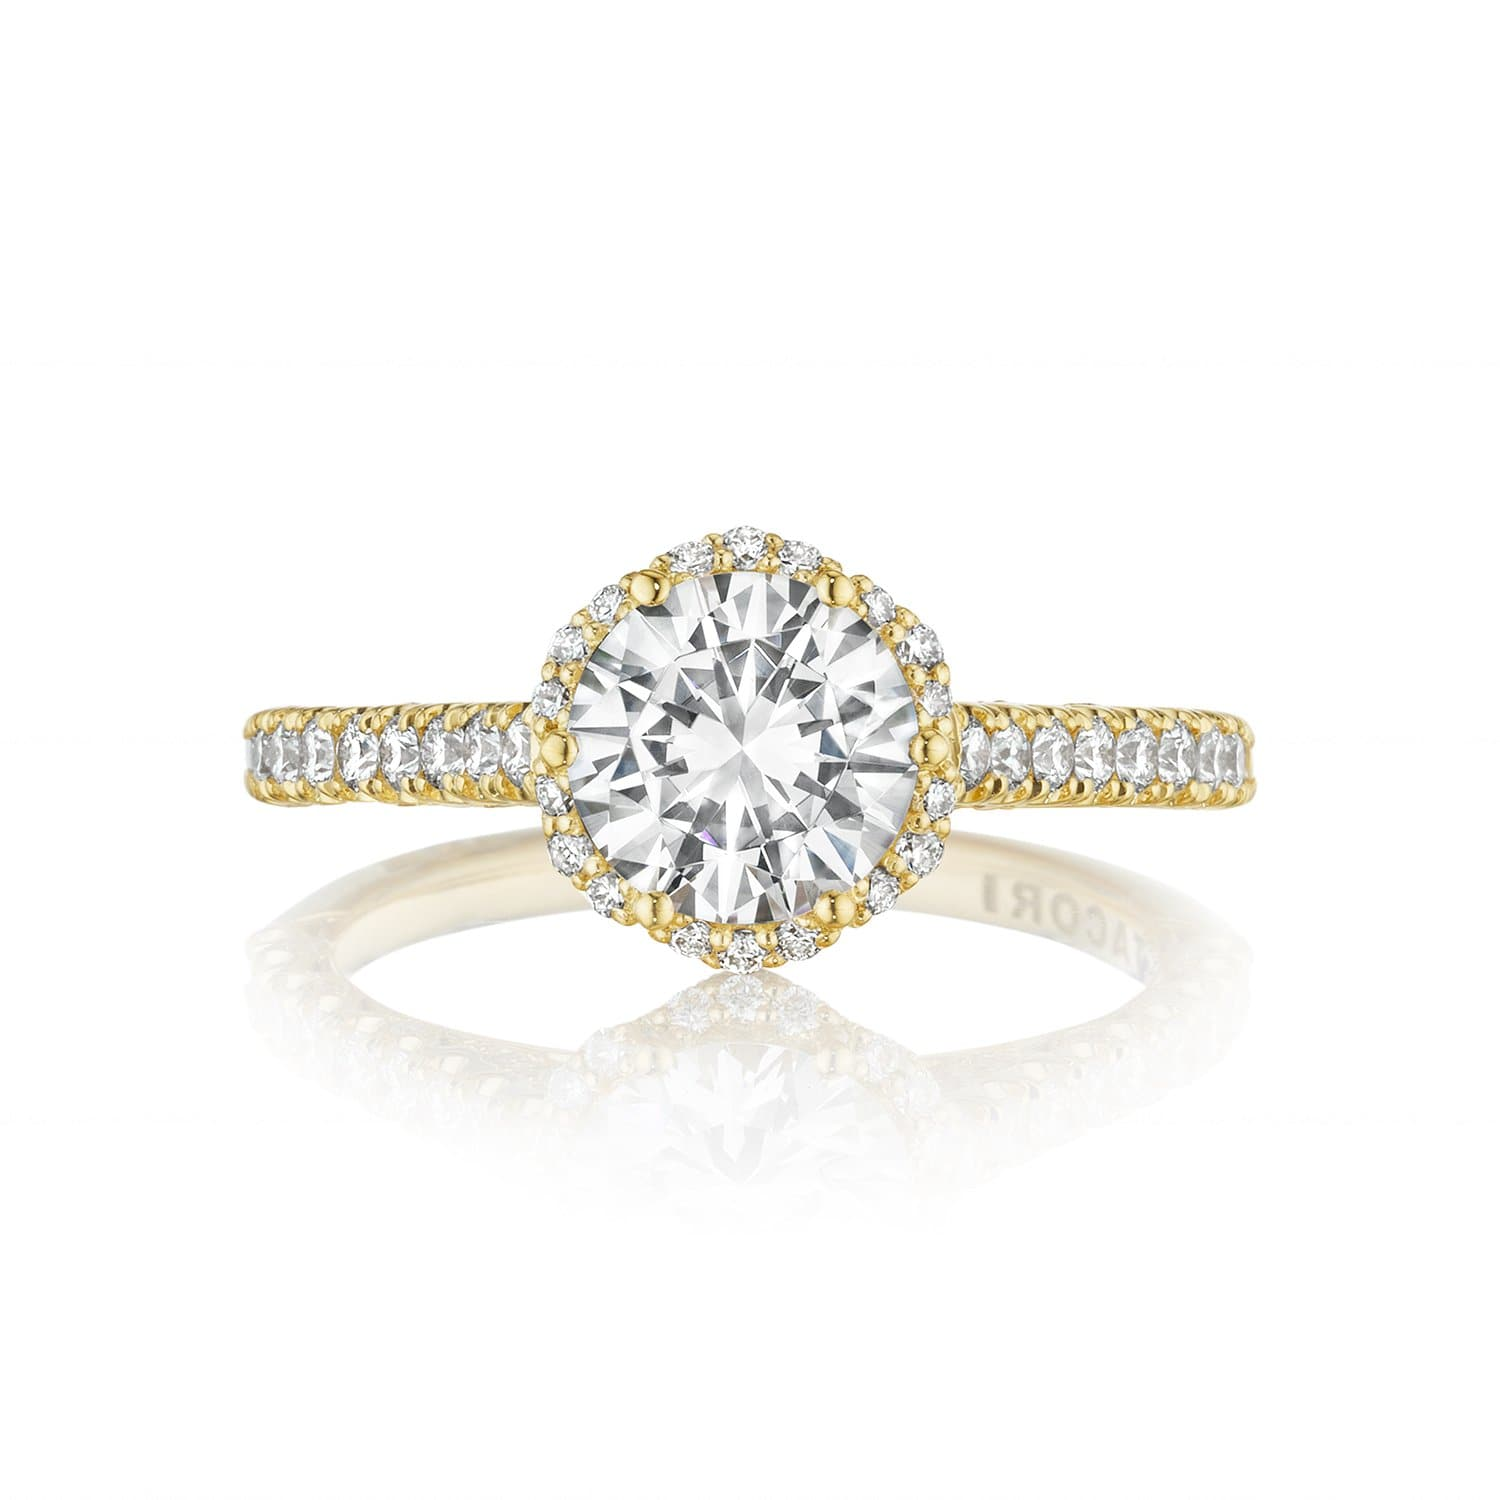 18 Karat Yellow Gold Tacori Petite Crescent Semi-Mount Diamond Ring (Setting Only)